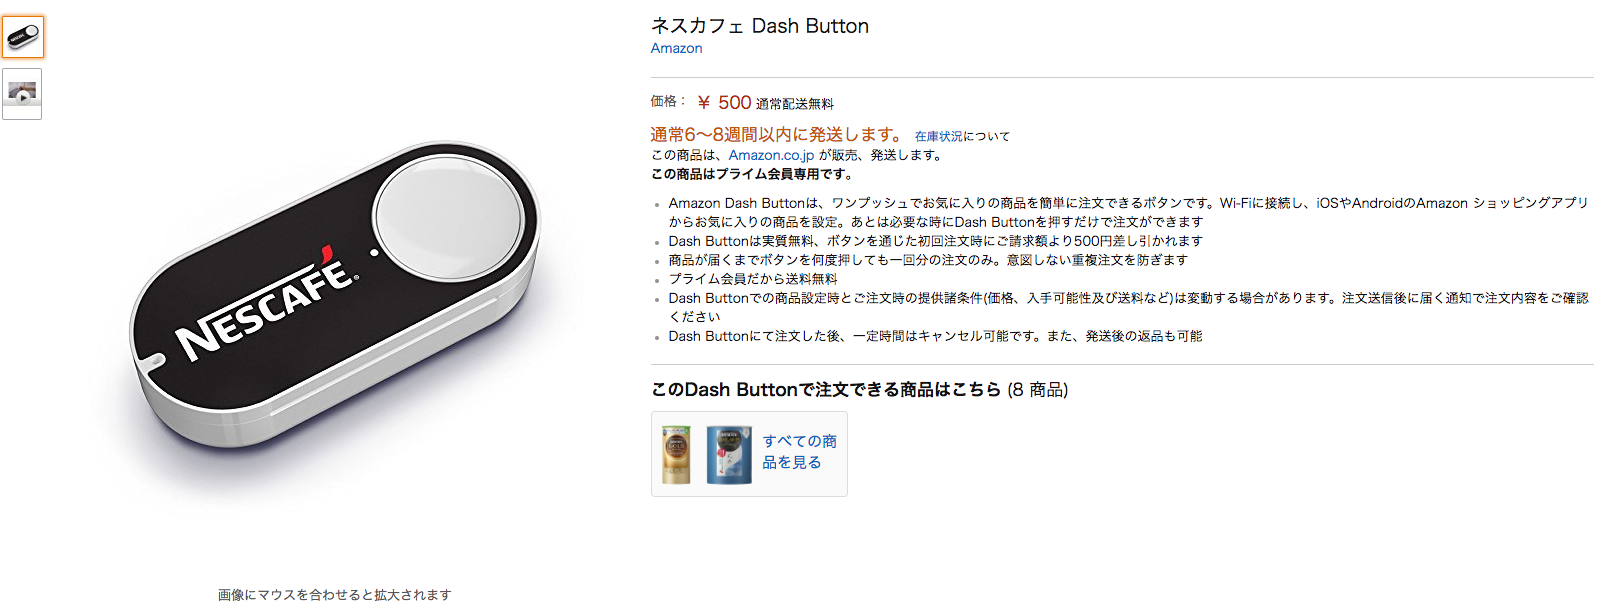 Amazon Dash Button 人気